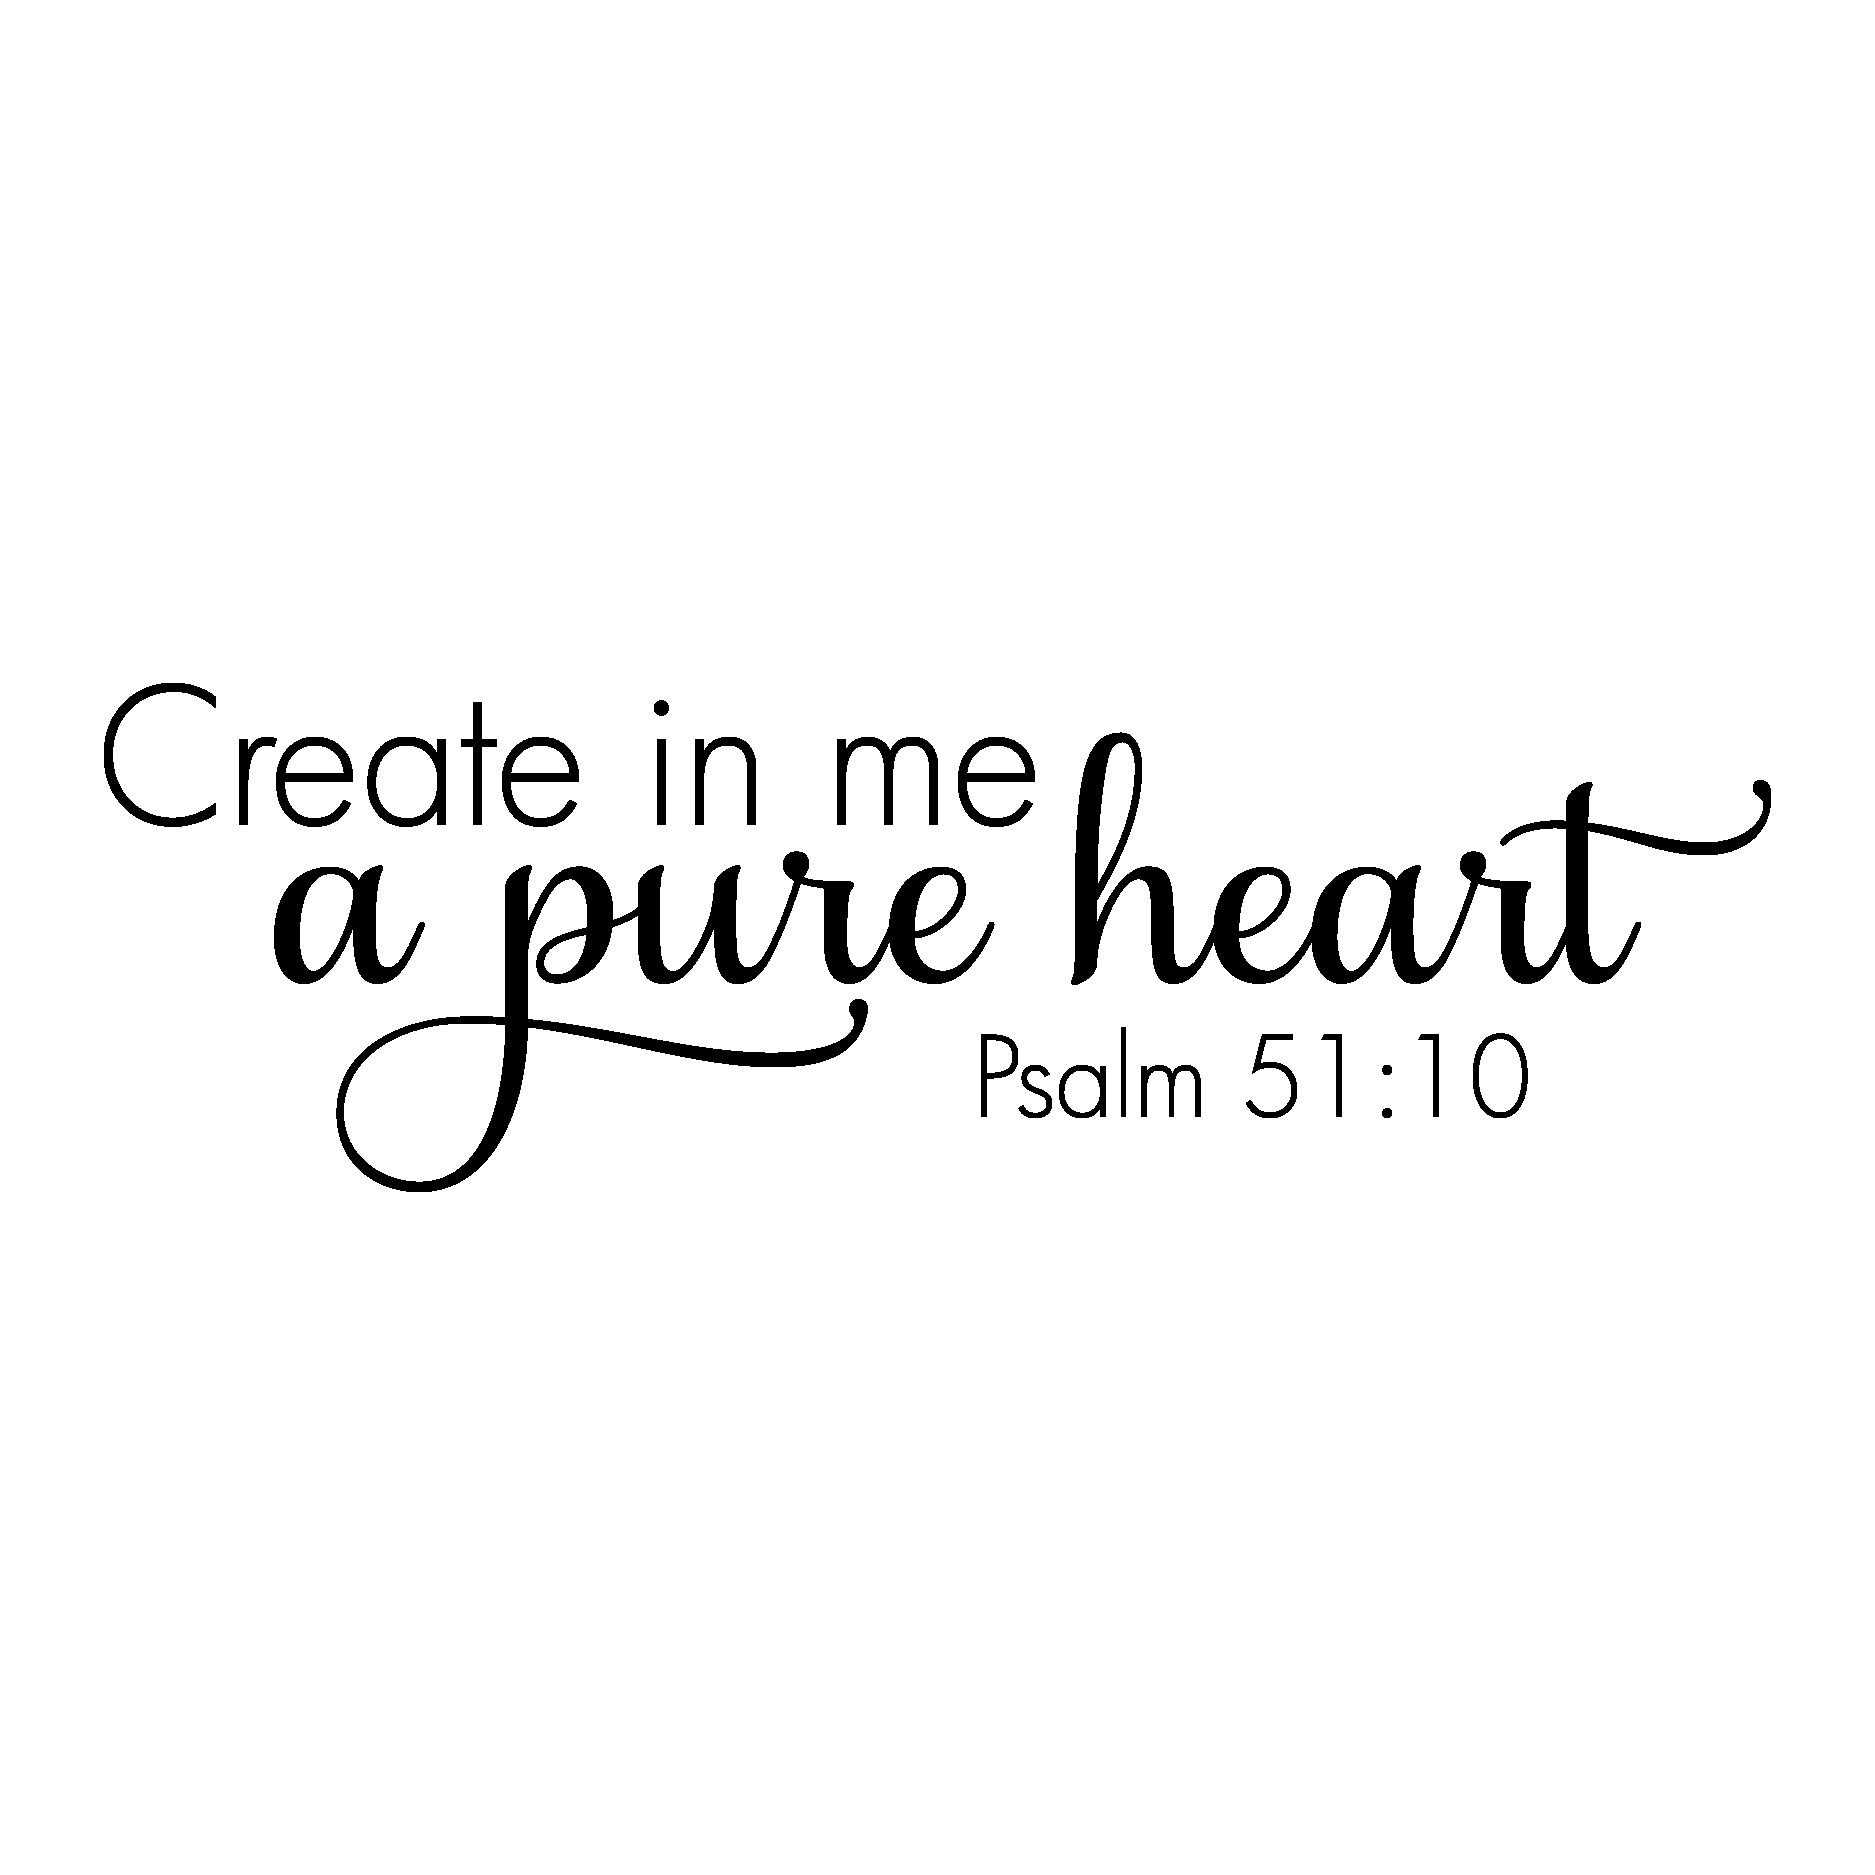 Pure Heart Wall Quotes Decal